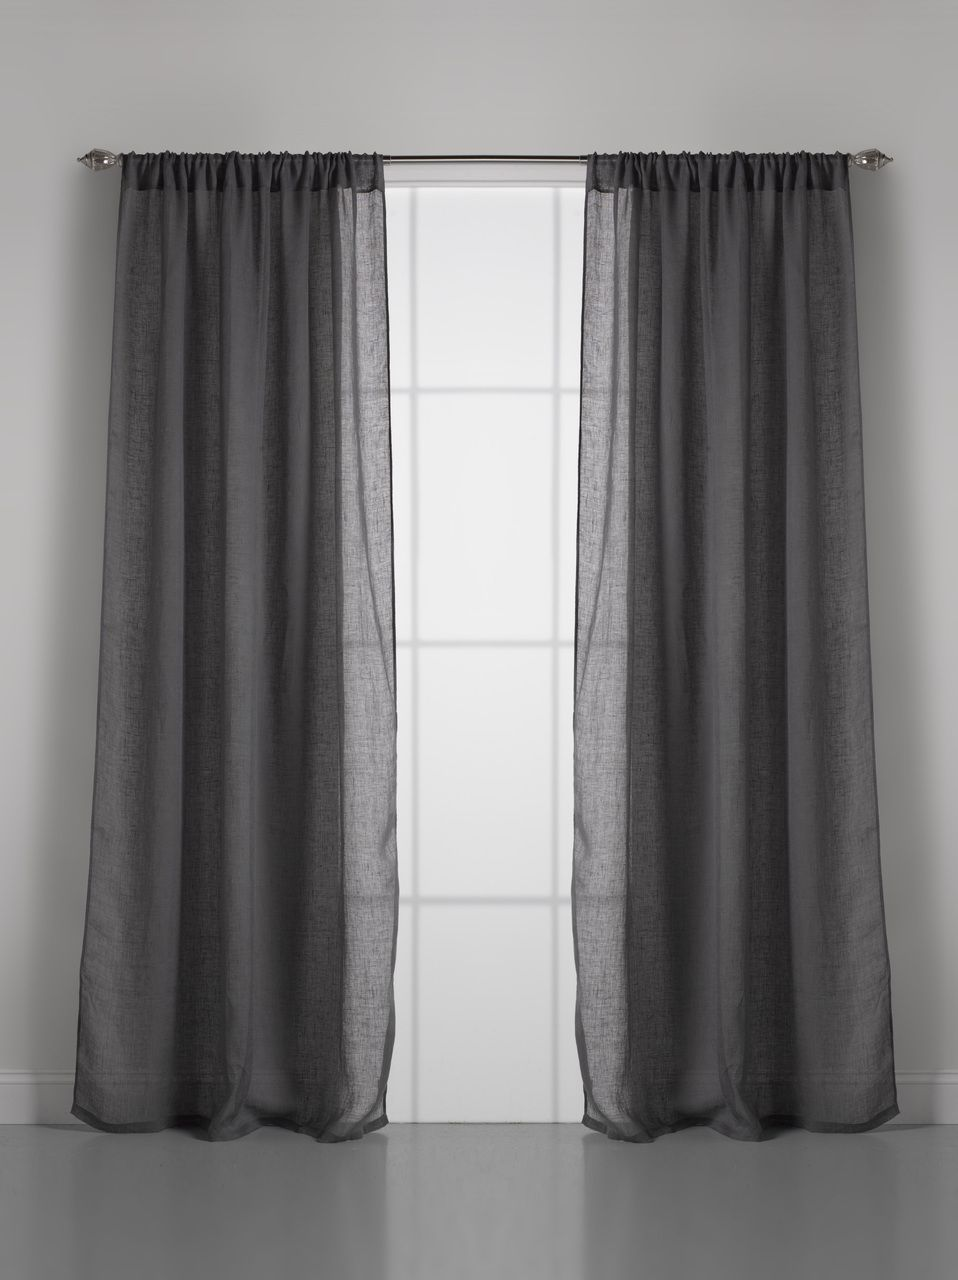 curtains co x curtain uk lined kylie eyelet home kitchen minogue slate dp natala amazon